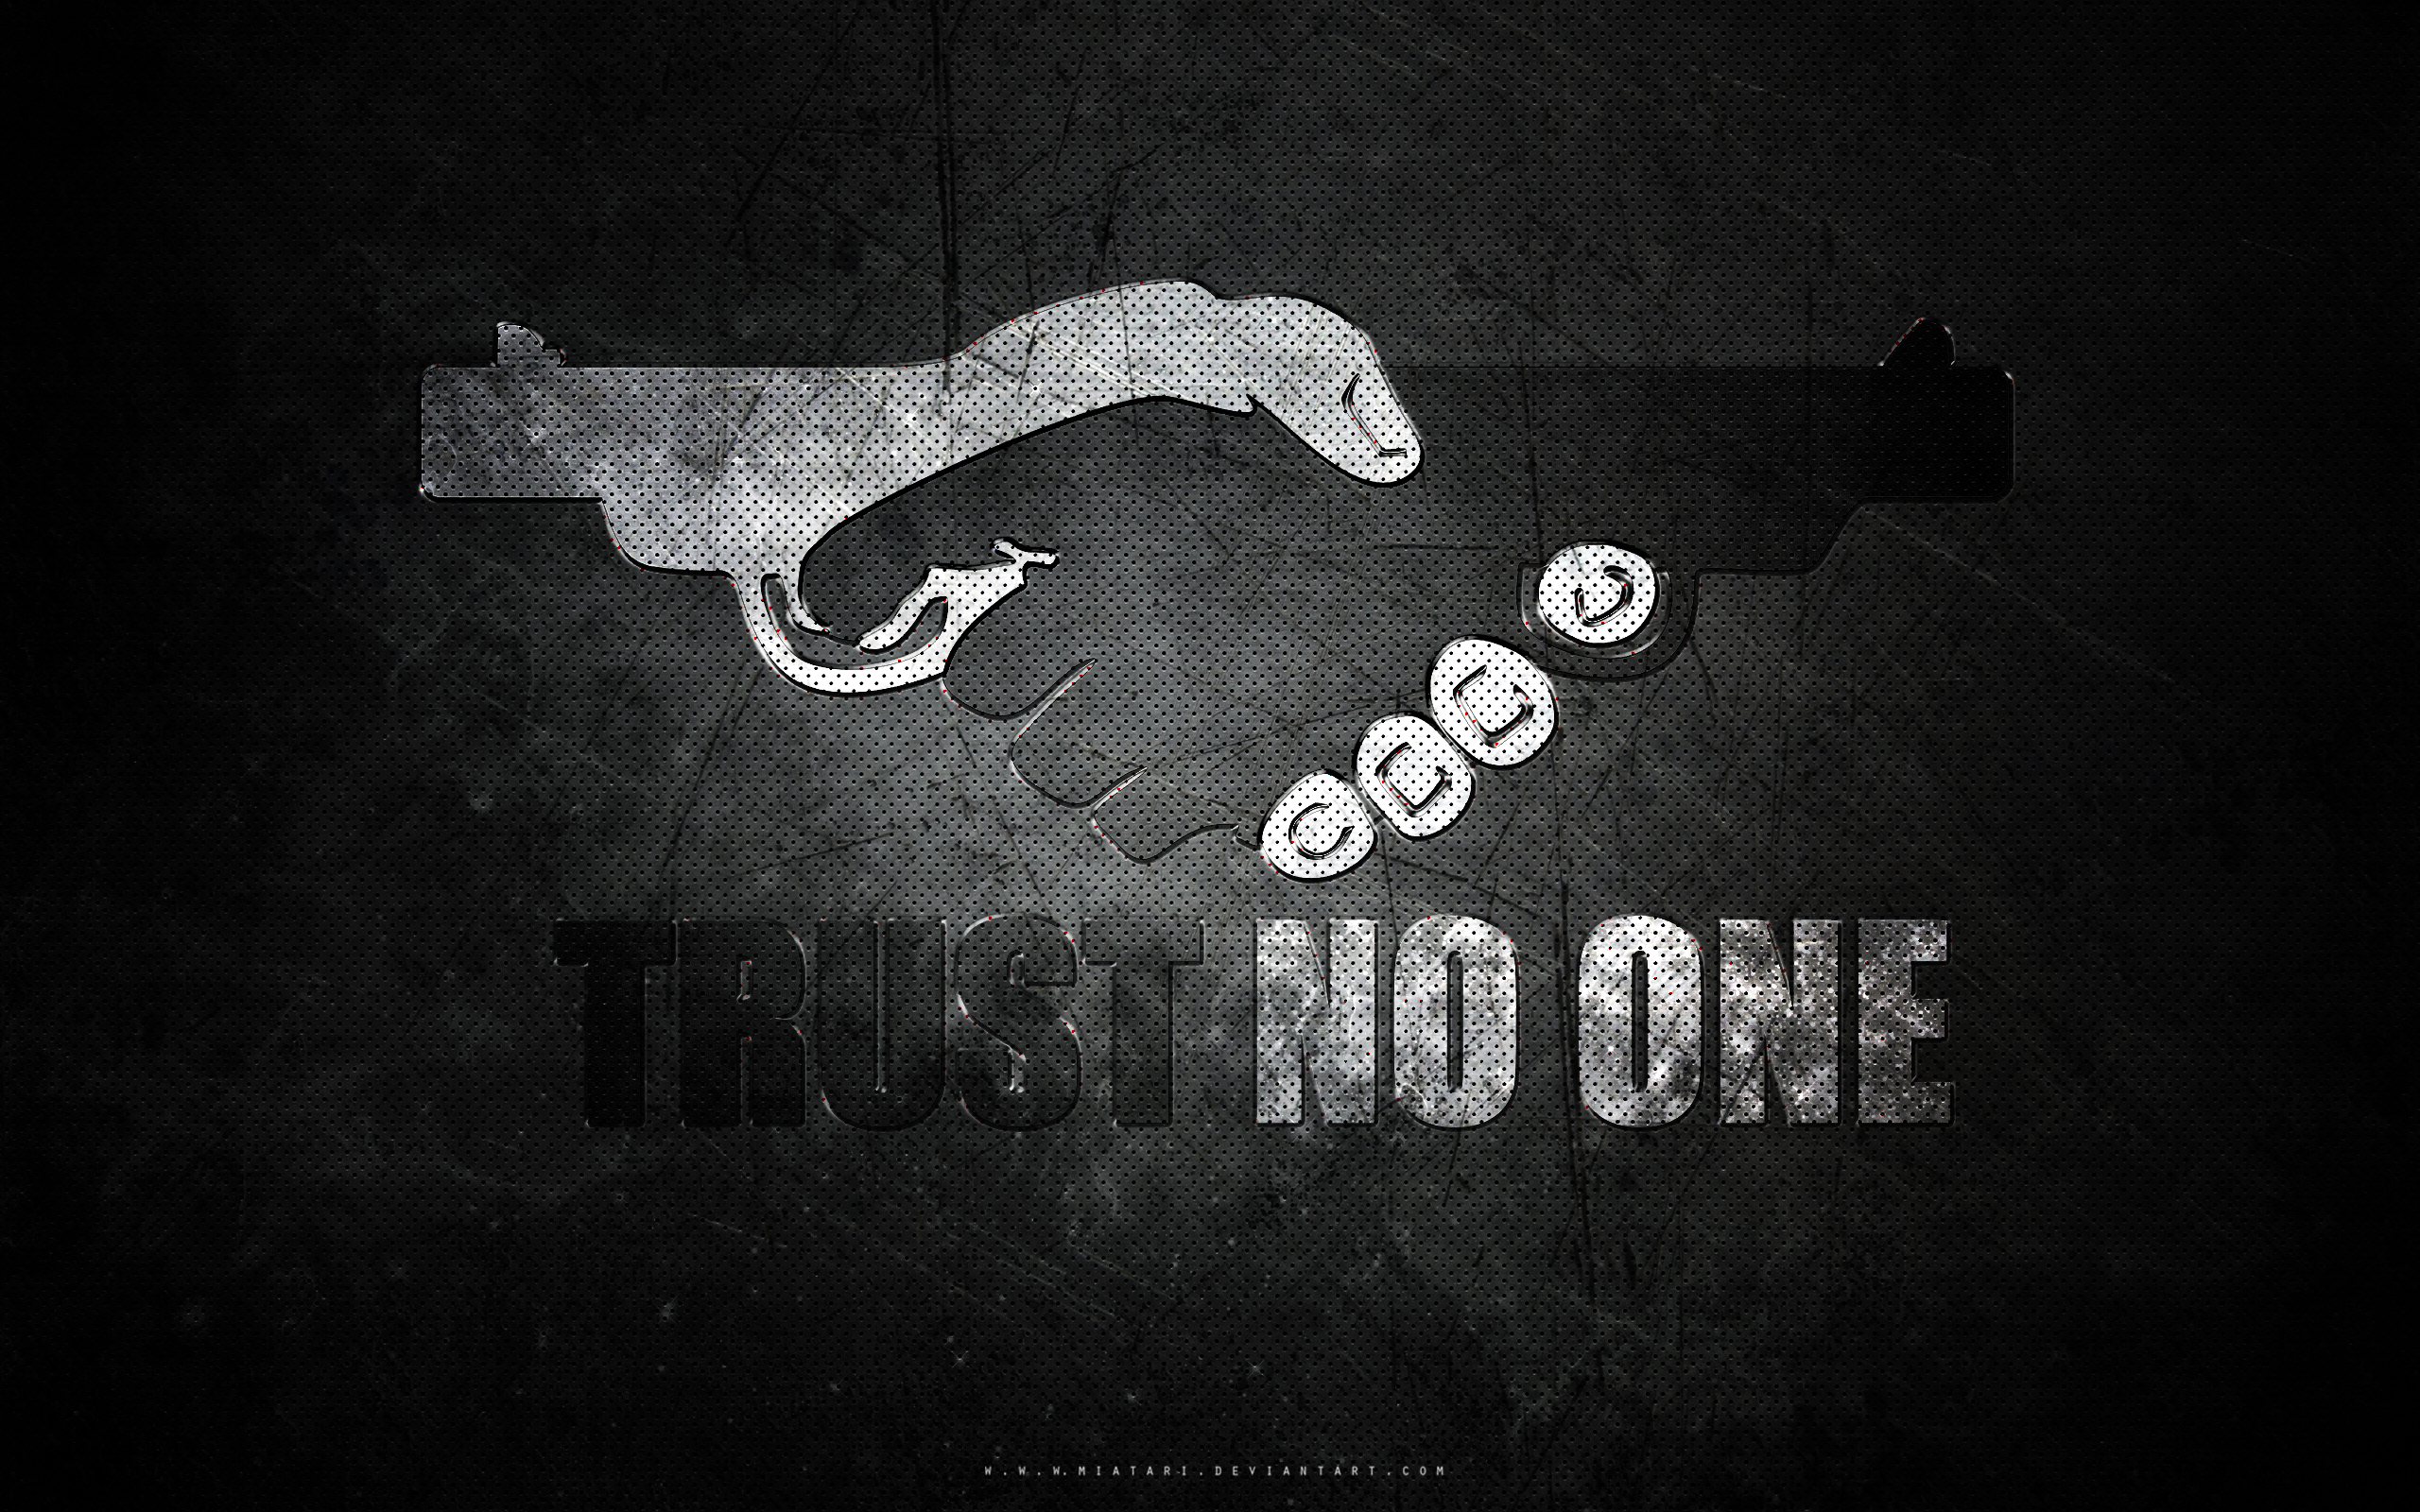 No One Wallpaper